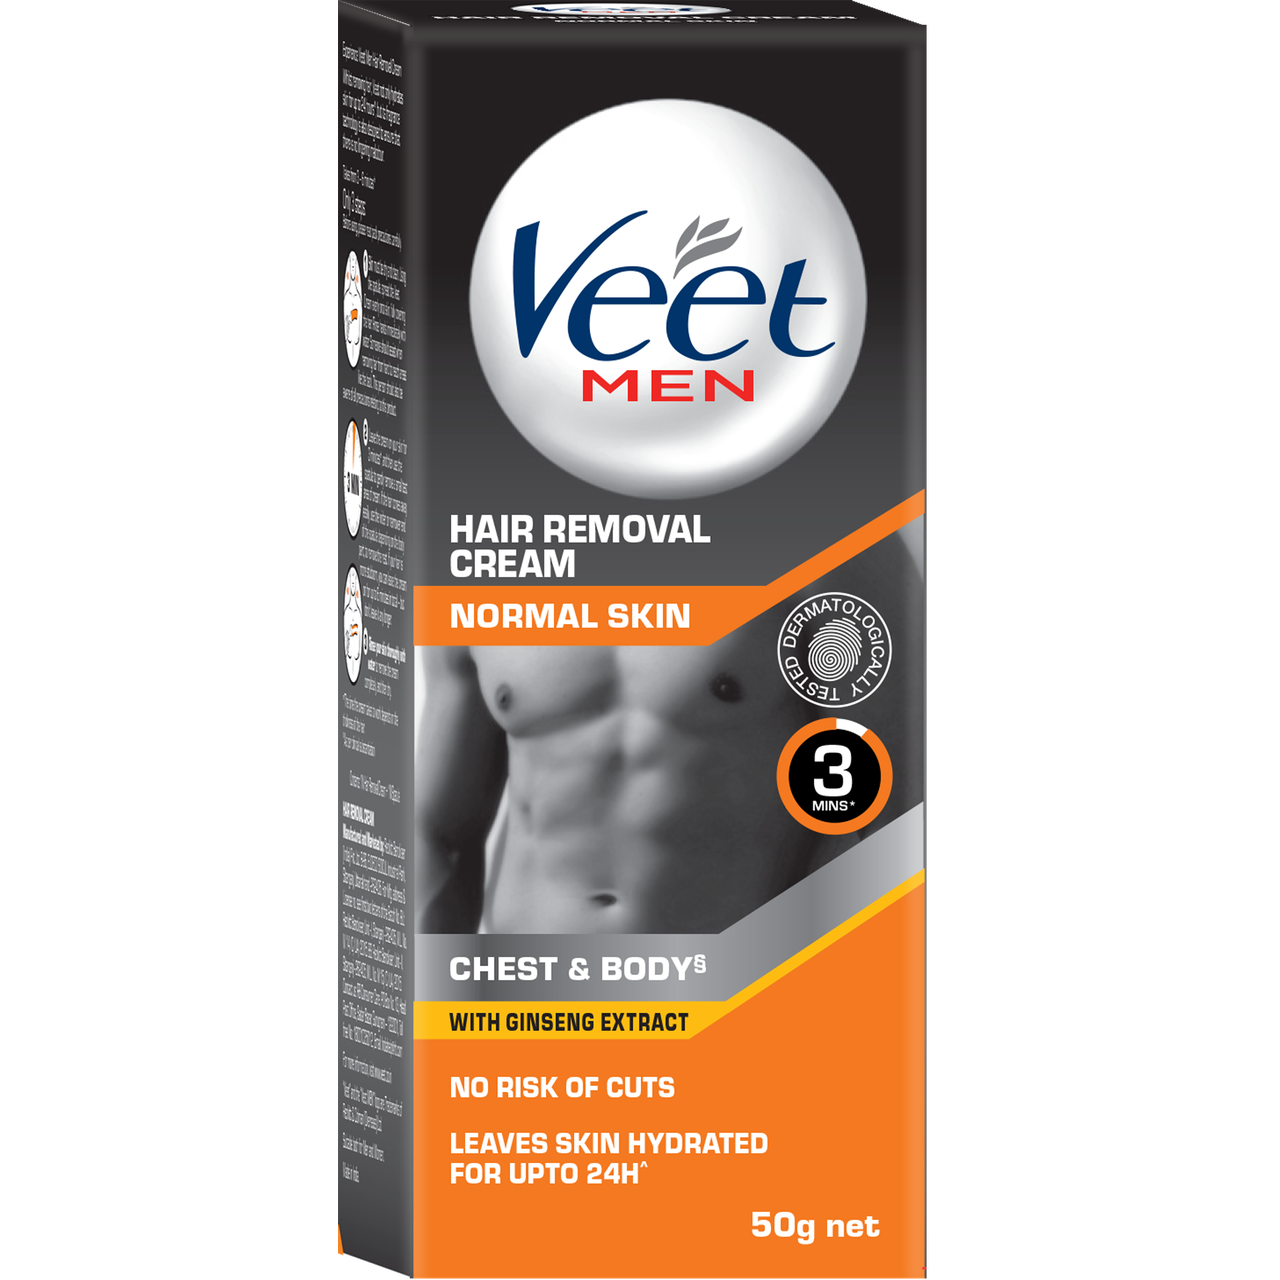 Buy Veet Men Hair Removal Cream Normal Skin Cream 50g Pack